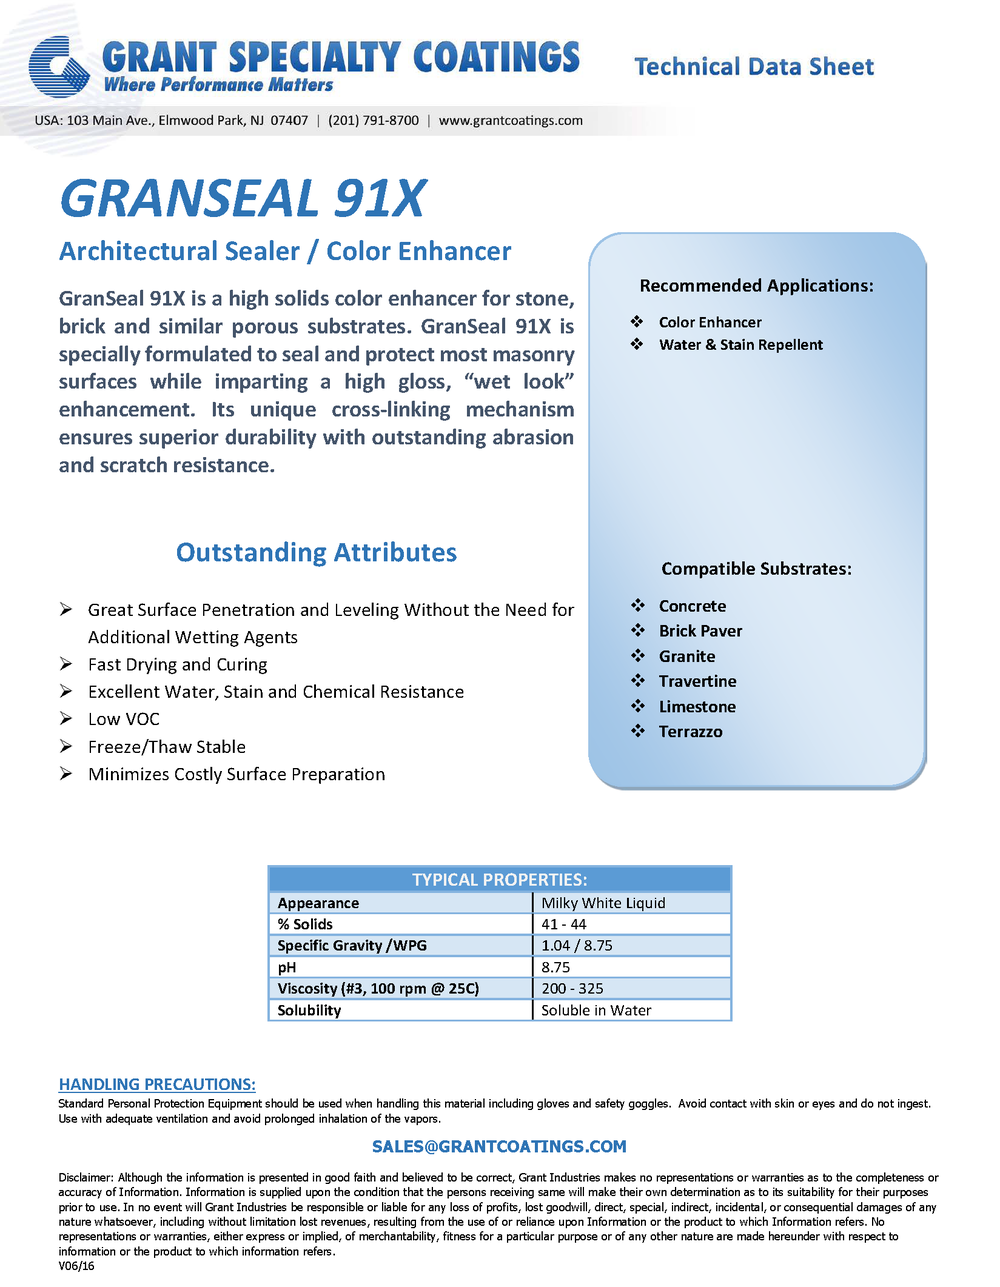 Architectural Sealer Color Enhancer GRANSEAL 91X